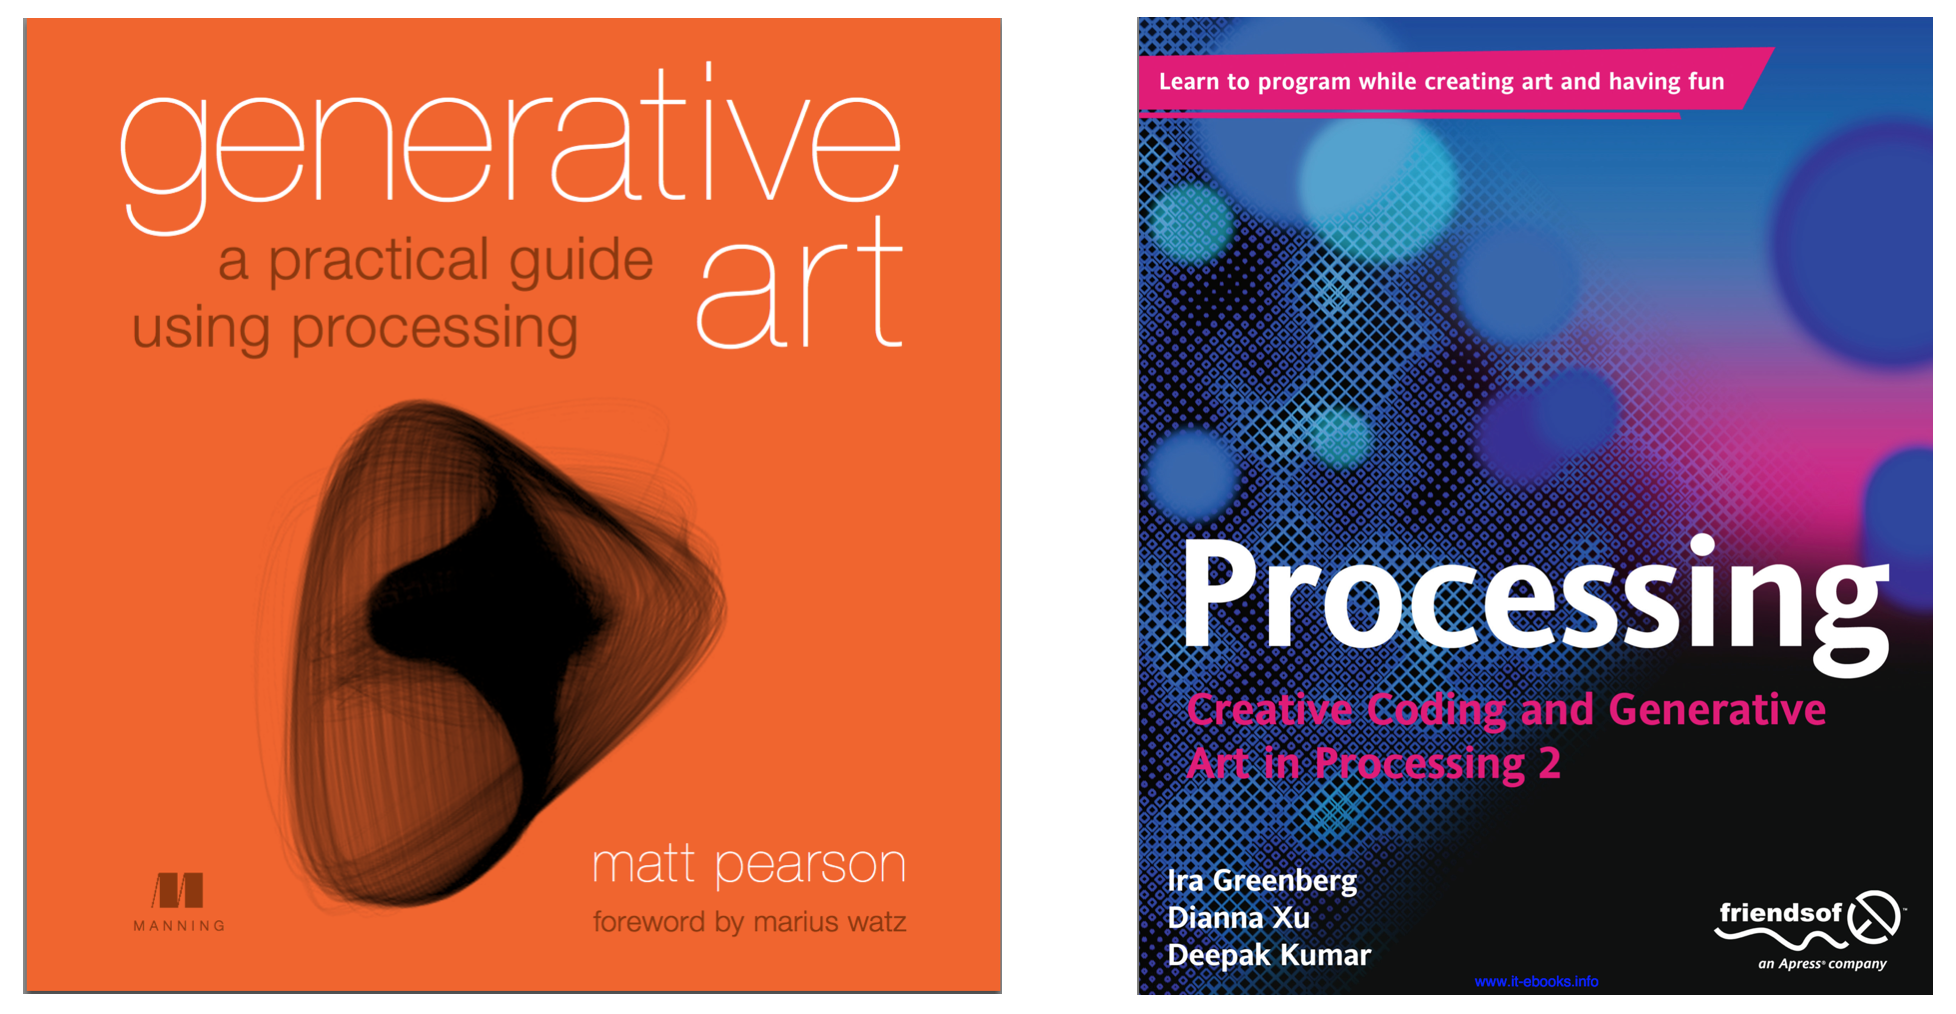 Book covers of 'Generative Art: a practical guide using processing'  and 'Processing: Creative Coding and Generative Art in Processing 2'